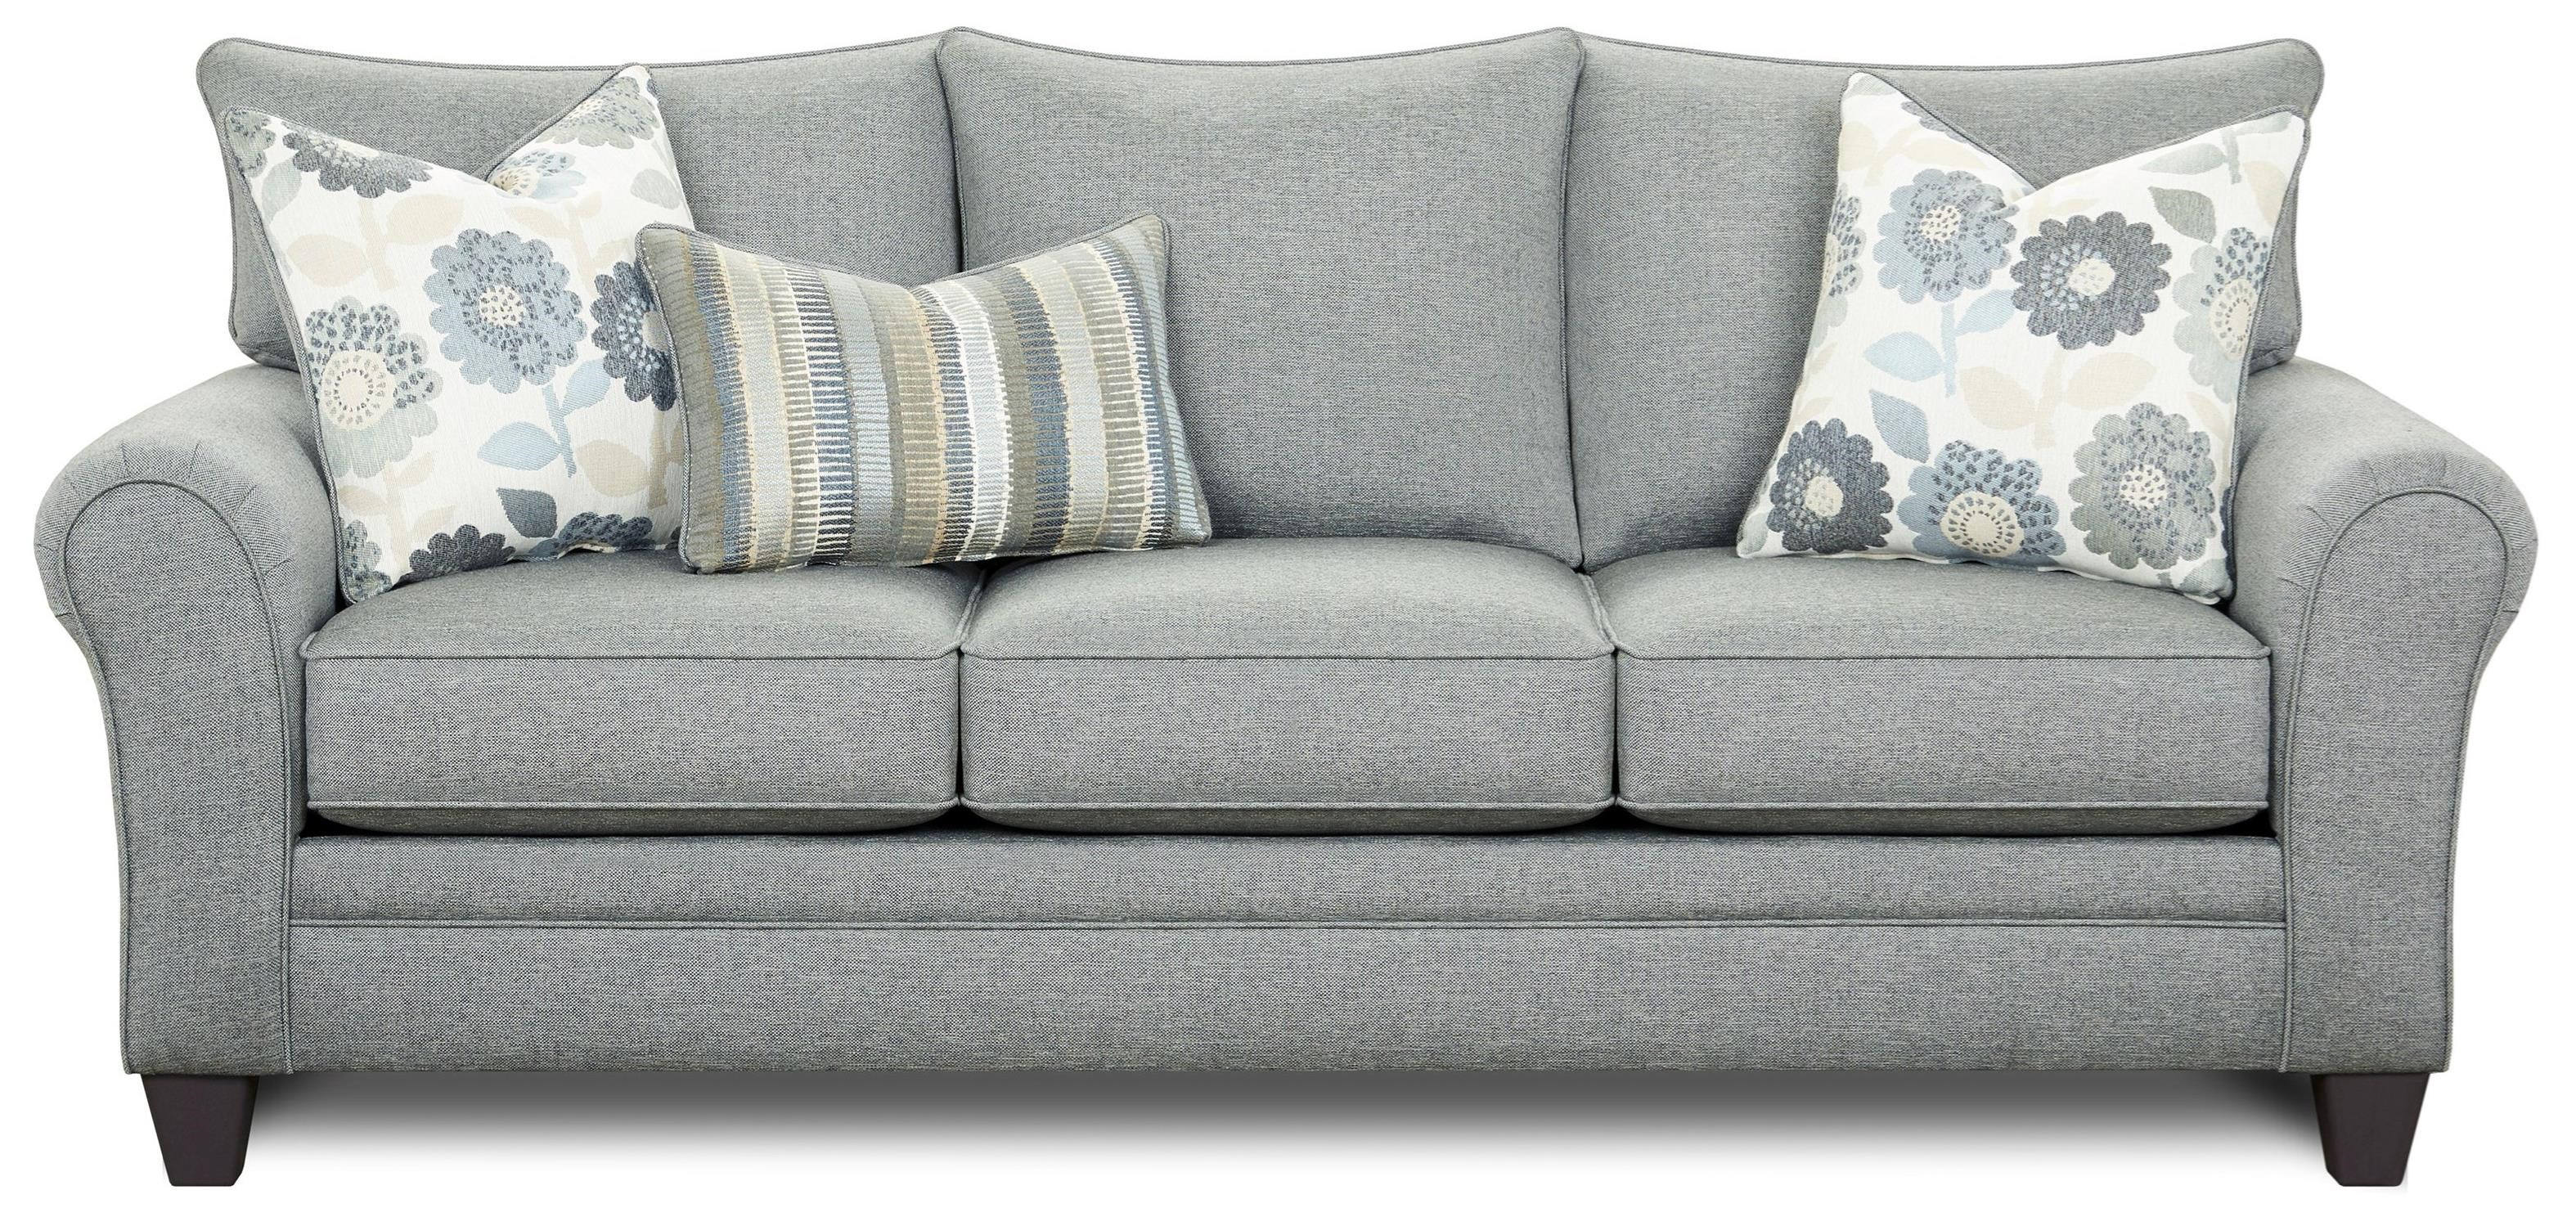 44-00 Sofa by Fusion Furniture at Hudson's Furniture